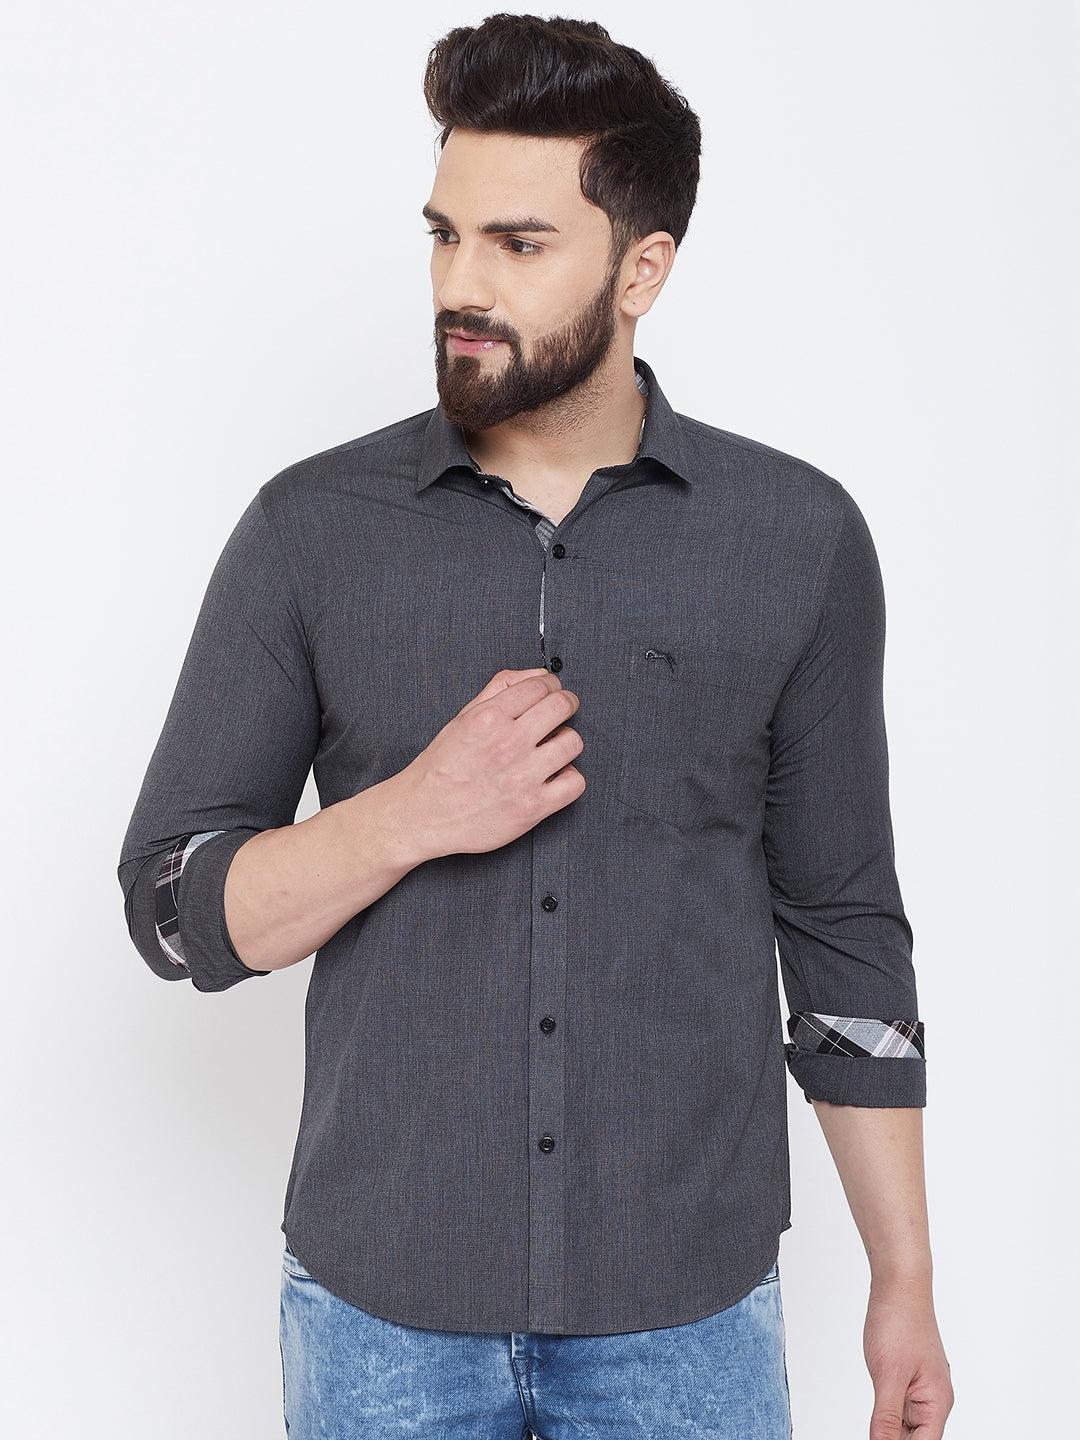 JUMP USA Men Charcoal Solid Cotton Casual Shirts